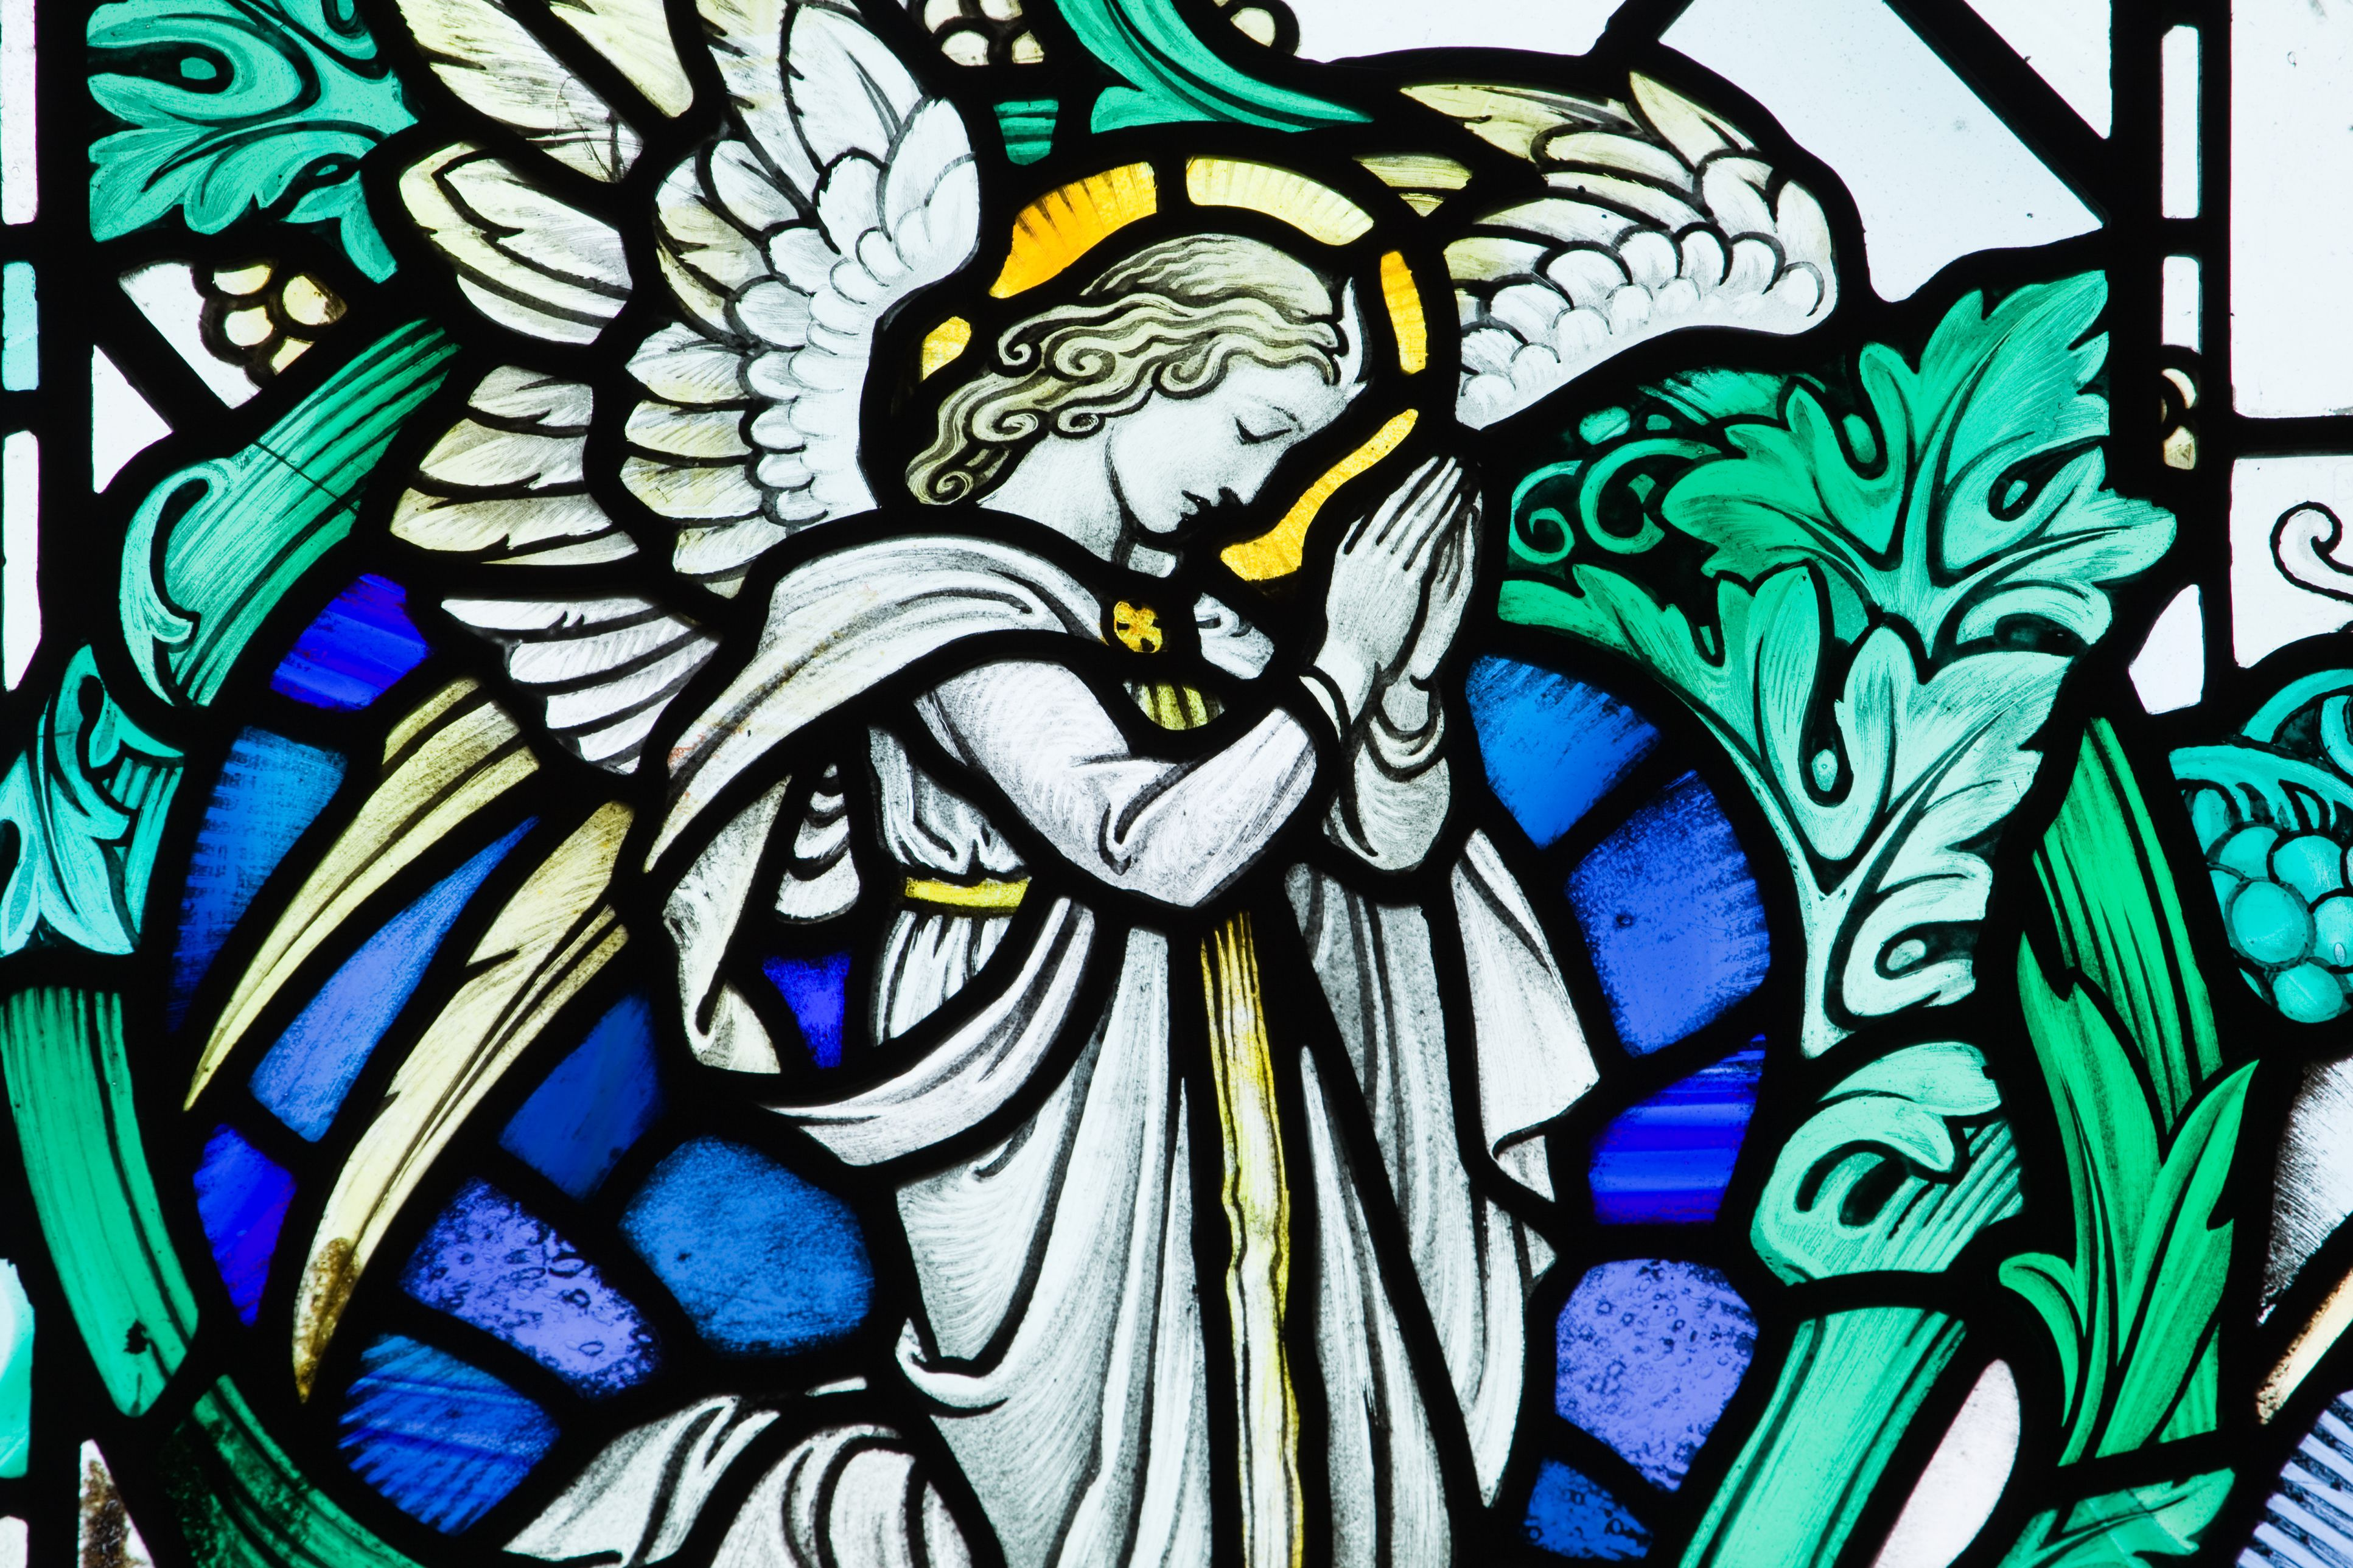 Personal Stories Of Angel Encounters